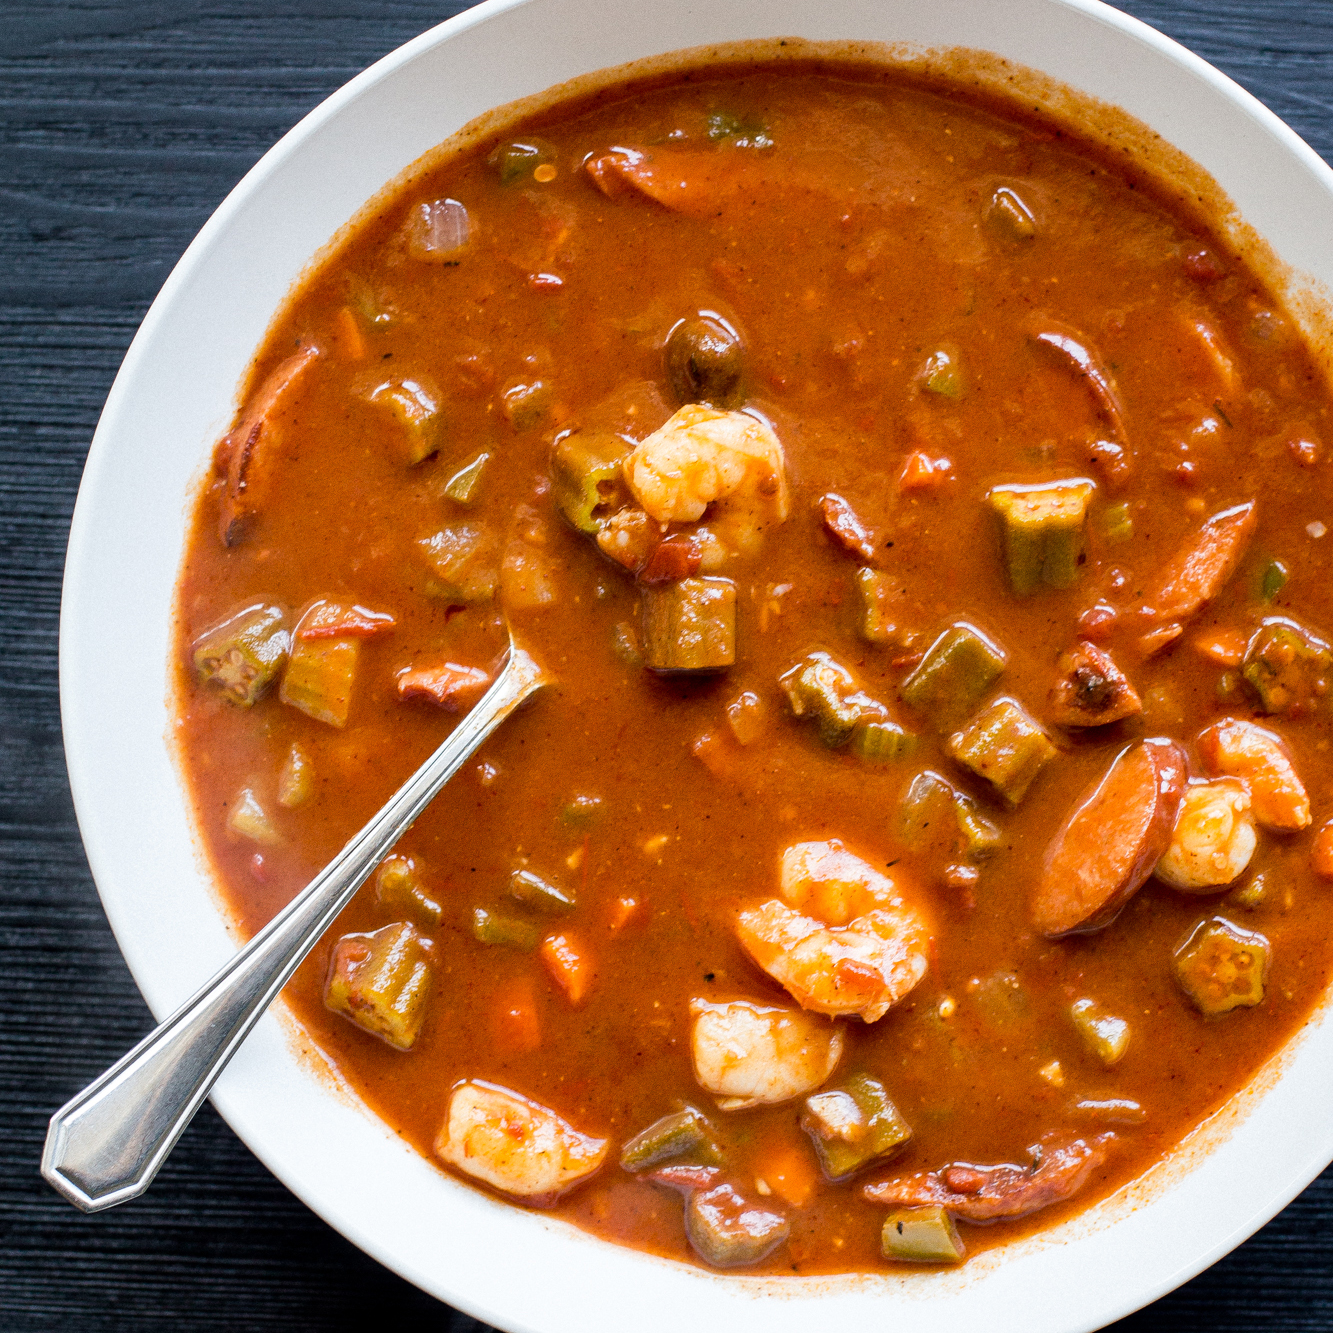 Day 8: Gluten-Free Shrimp and Sausage Gumbo